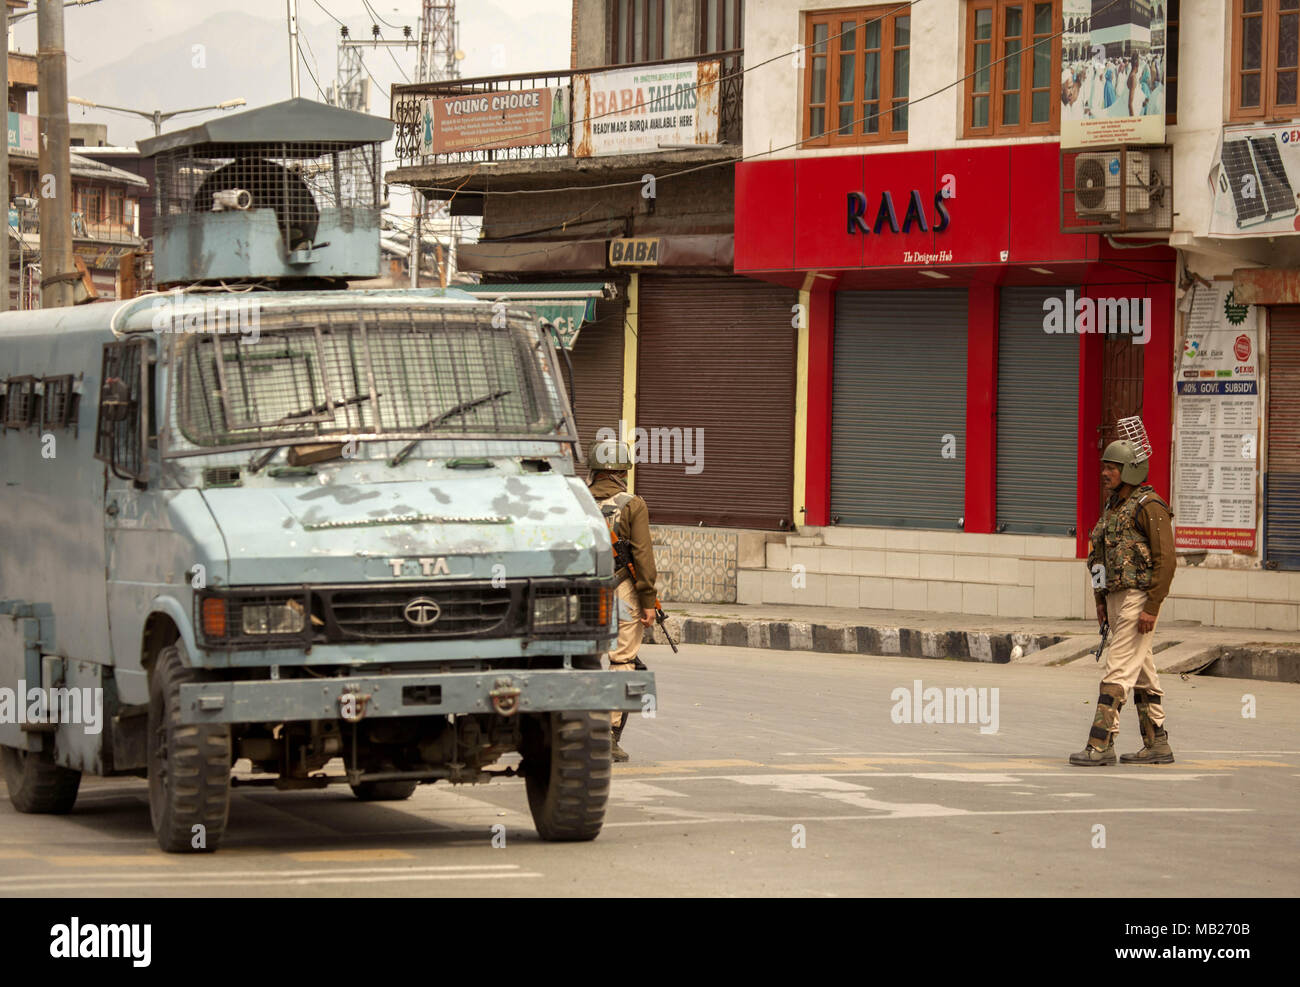 Kashmir, Kashmir. 6th Apr, 2018. Indian paramilitary troopers stand guard in a closed market in Downtown area during restrictions in Srinagar city, the summer capital of Kashmir, April 6, 2018. Authorities imposed restrictions in parts of Srinagar city to prevent protests. Credit: Javed Dar/Xinhua/Alamy Live News - Stock Image